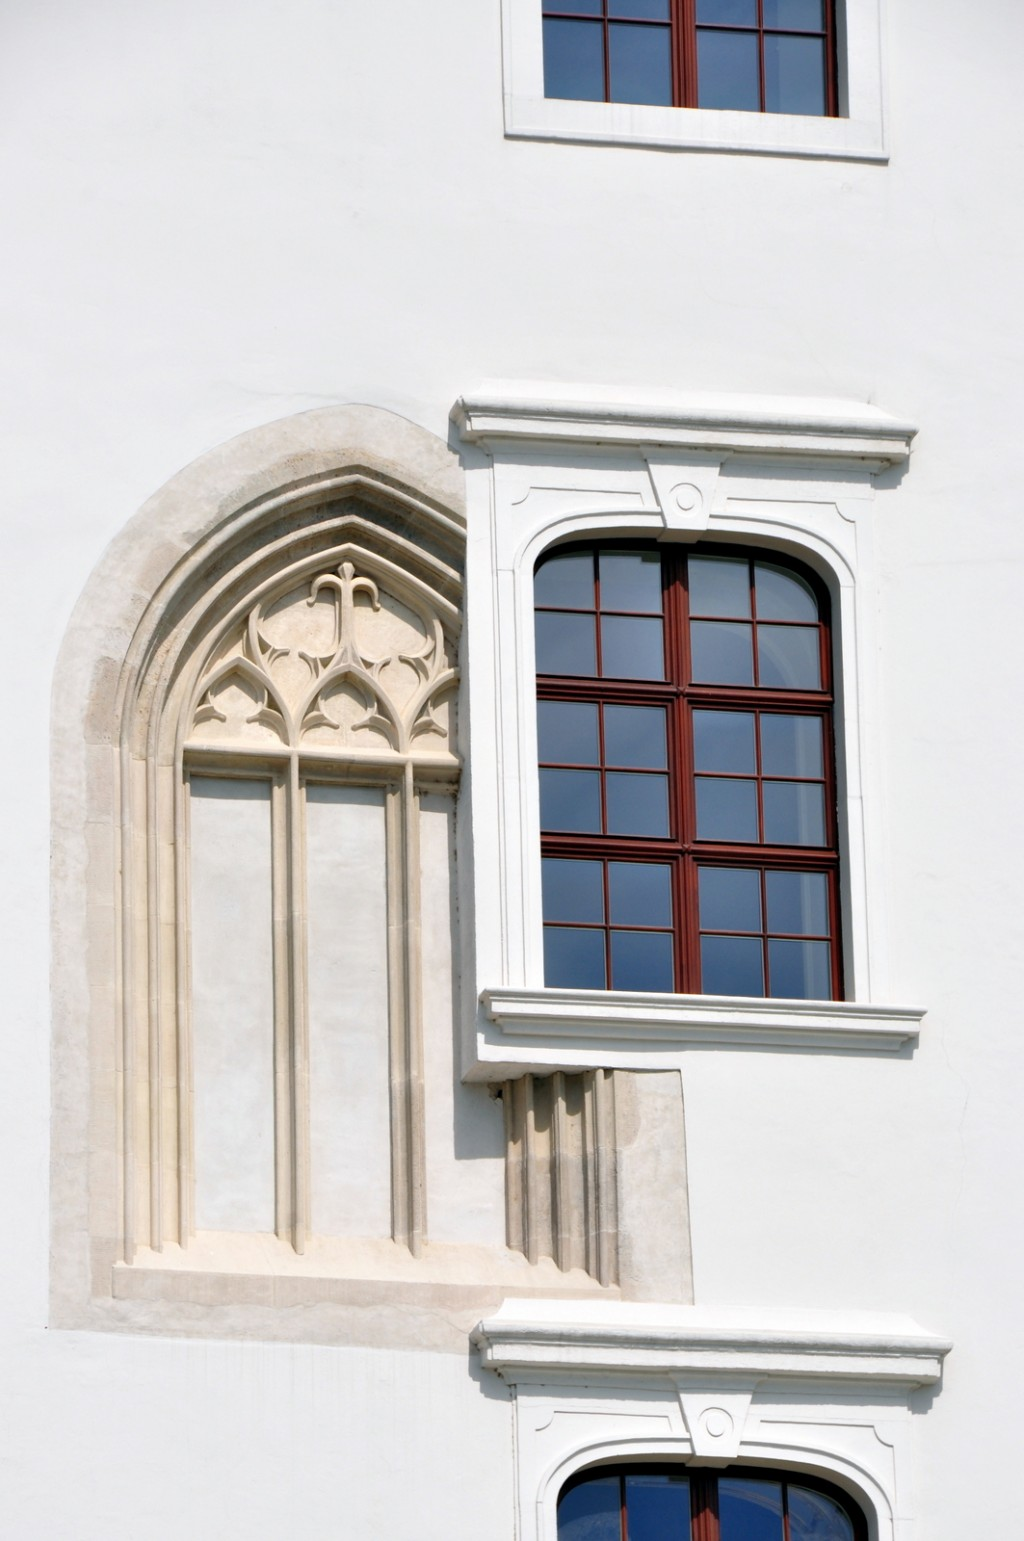 When they restored the castle, some of the architecture of the windows got a little confused.